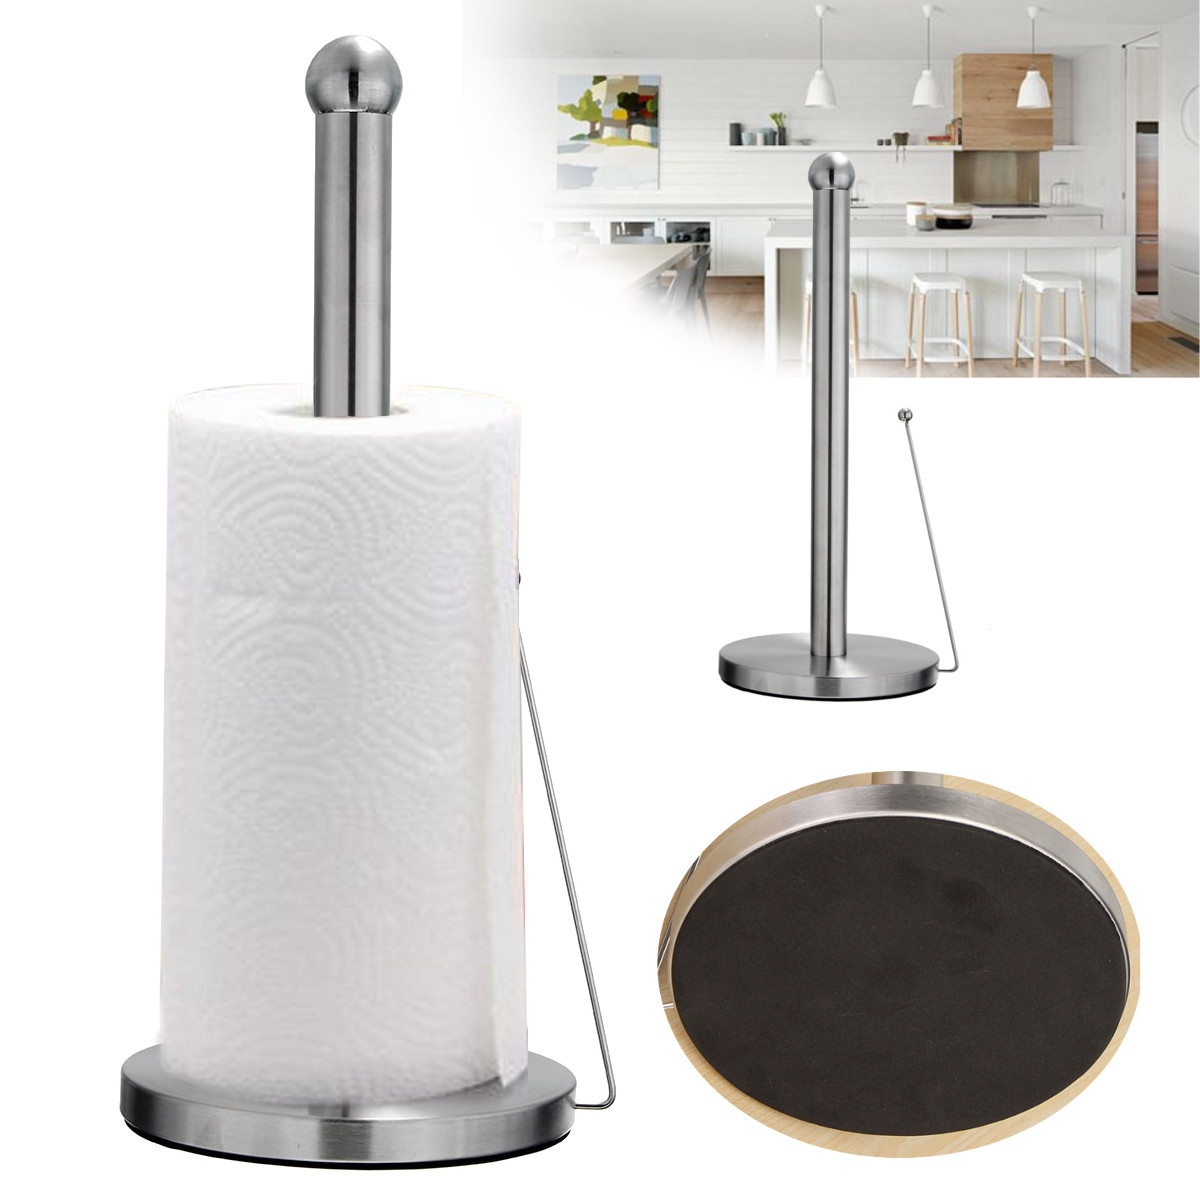 Freestanding Paper Towel Holder Hook Stainless Steel